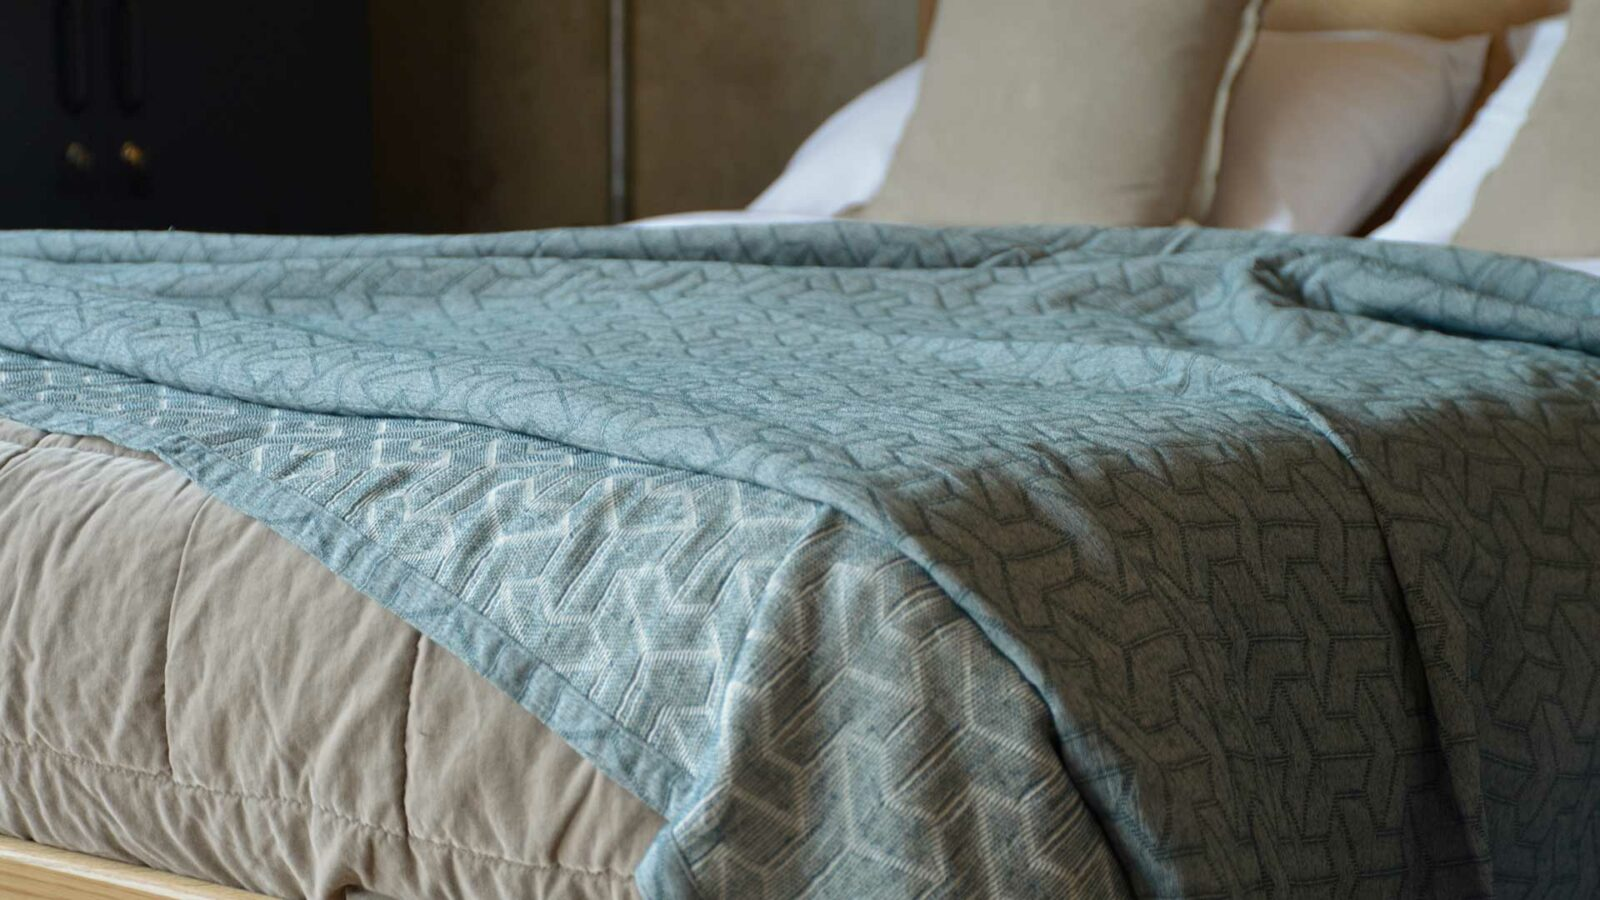 petrol blue recycled cotton bedspread with stitched geometric pattern